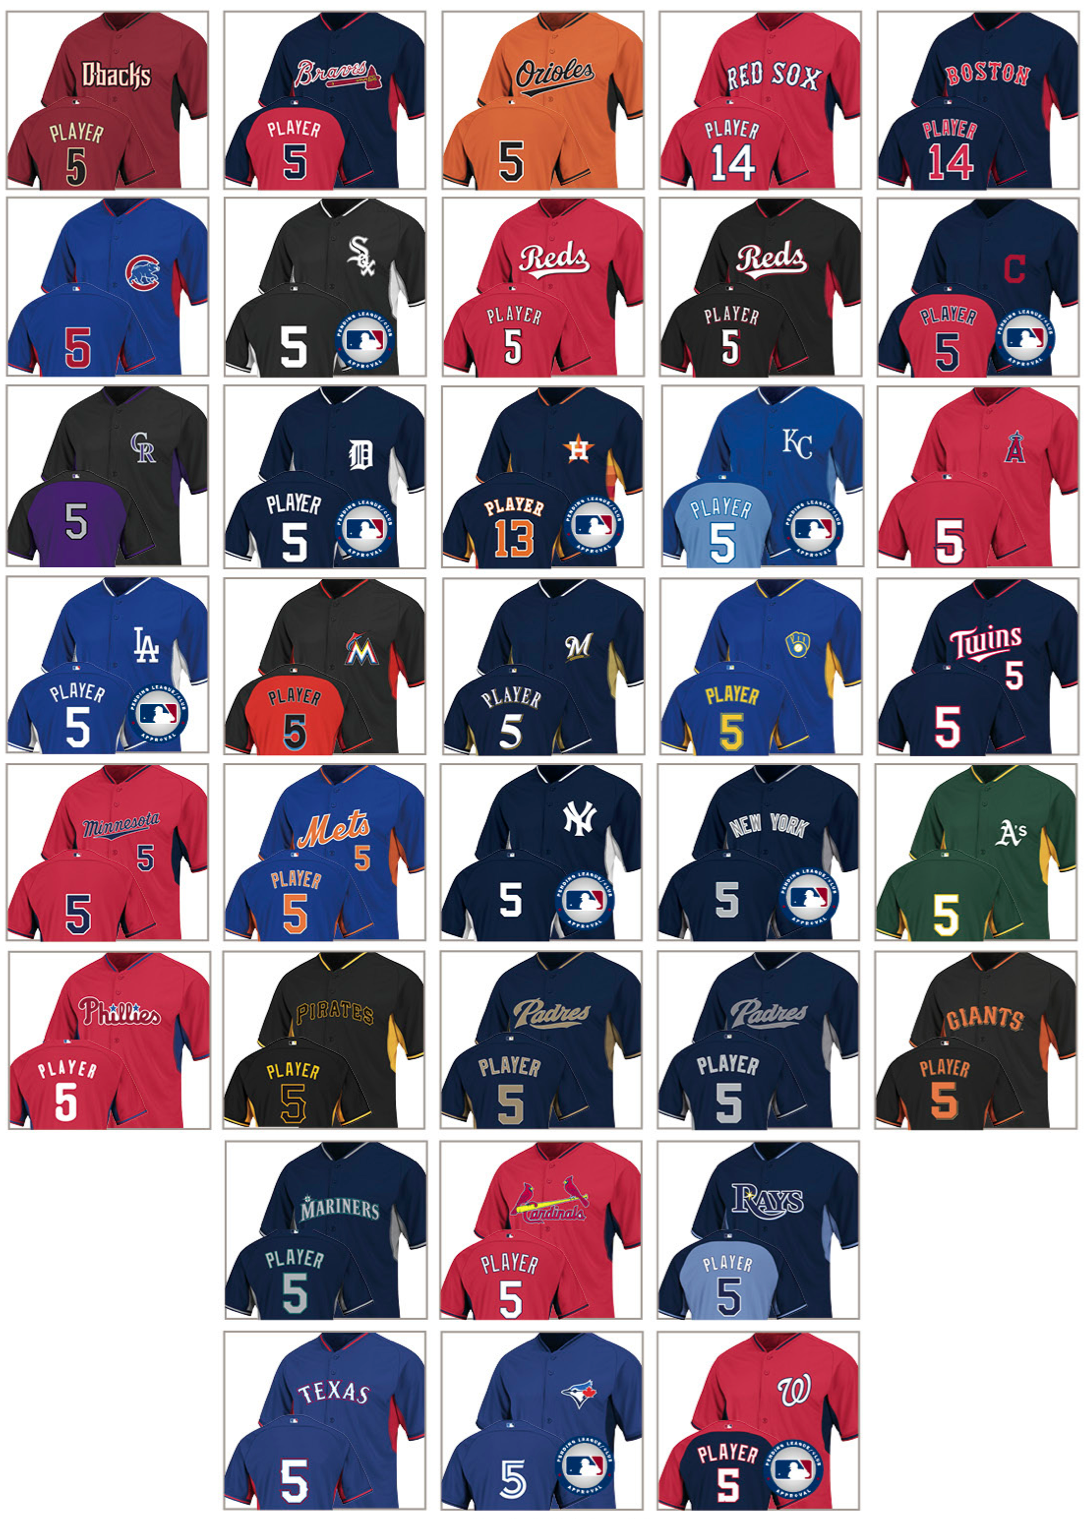 c007b738e59 Uni Watch exclusive  New 2014 BP jerseys - SweetSpot- ESPN